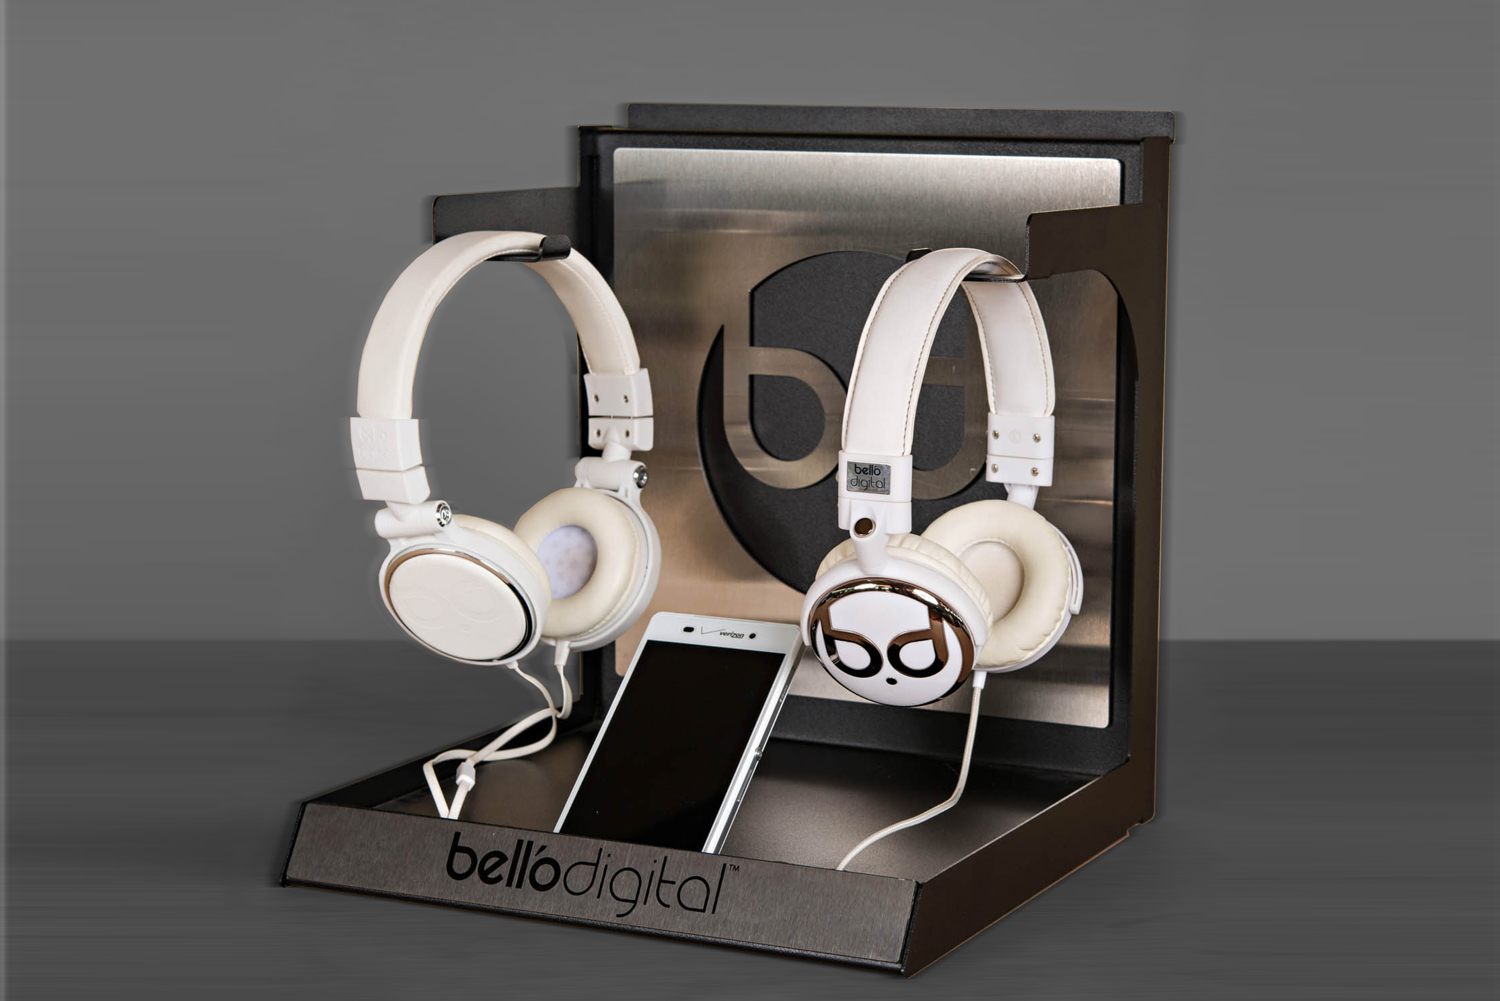 bello-digital-headphone-display-by-metaline